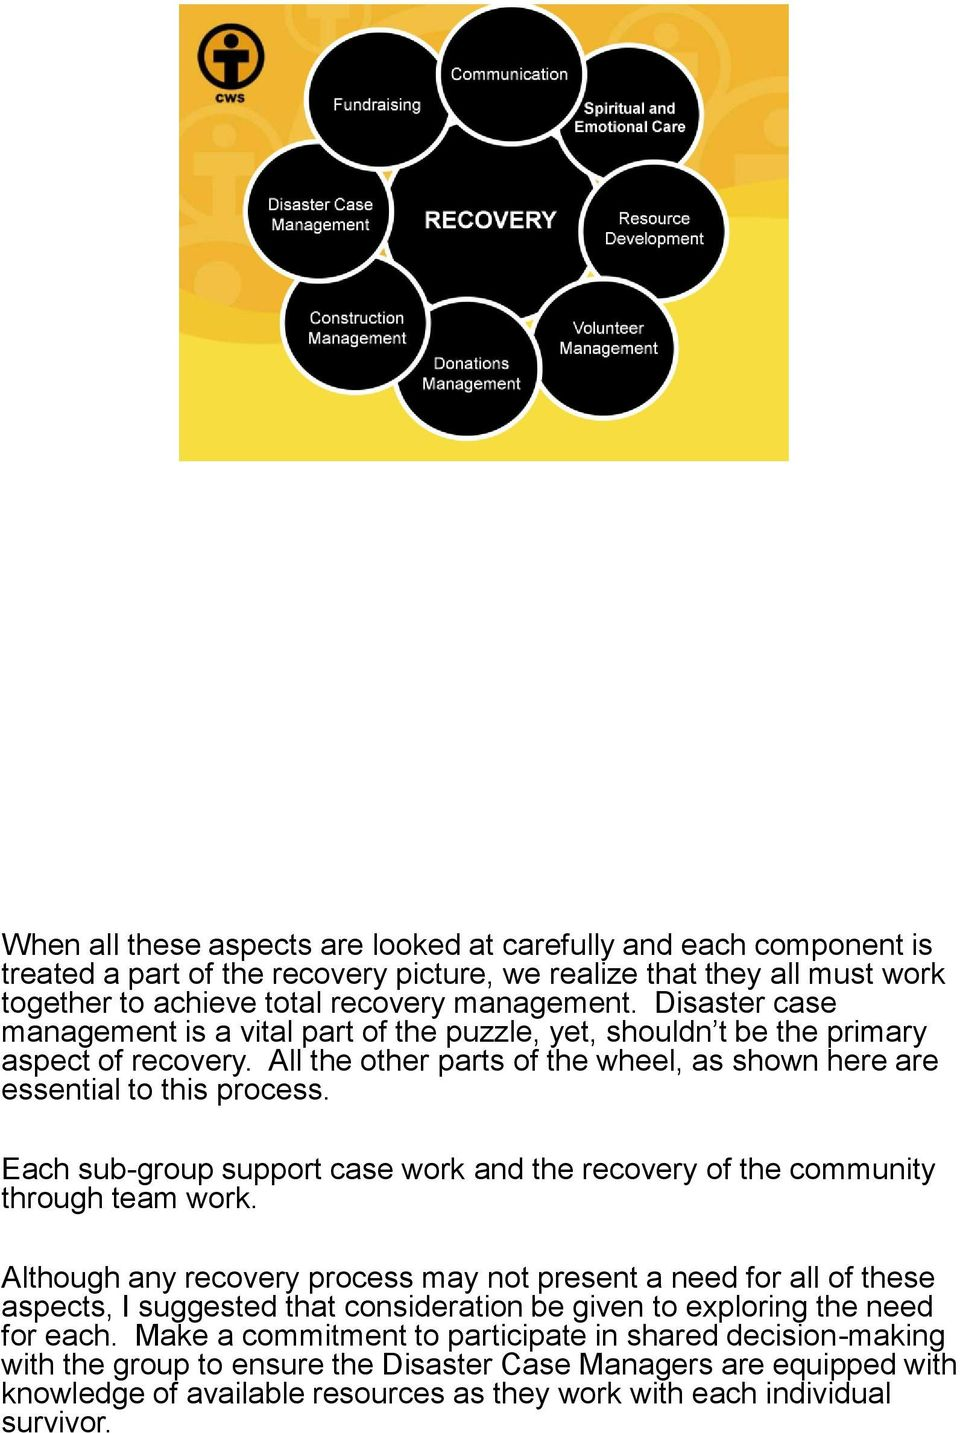 Each sub-group support case work and the recovery of the community through team work.